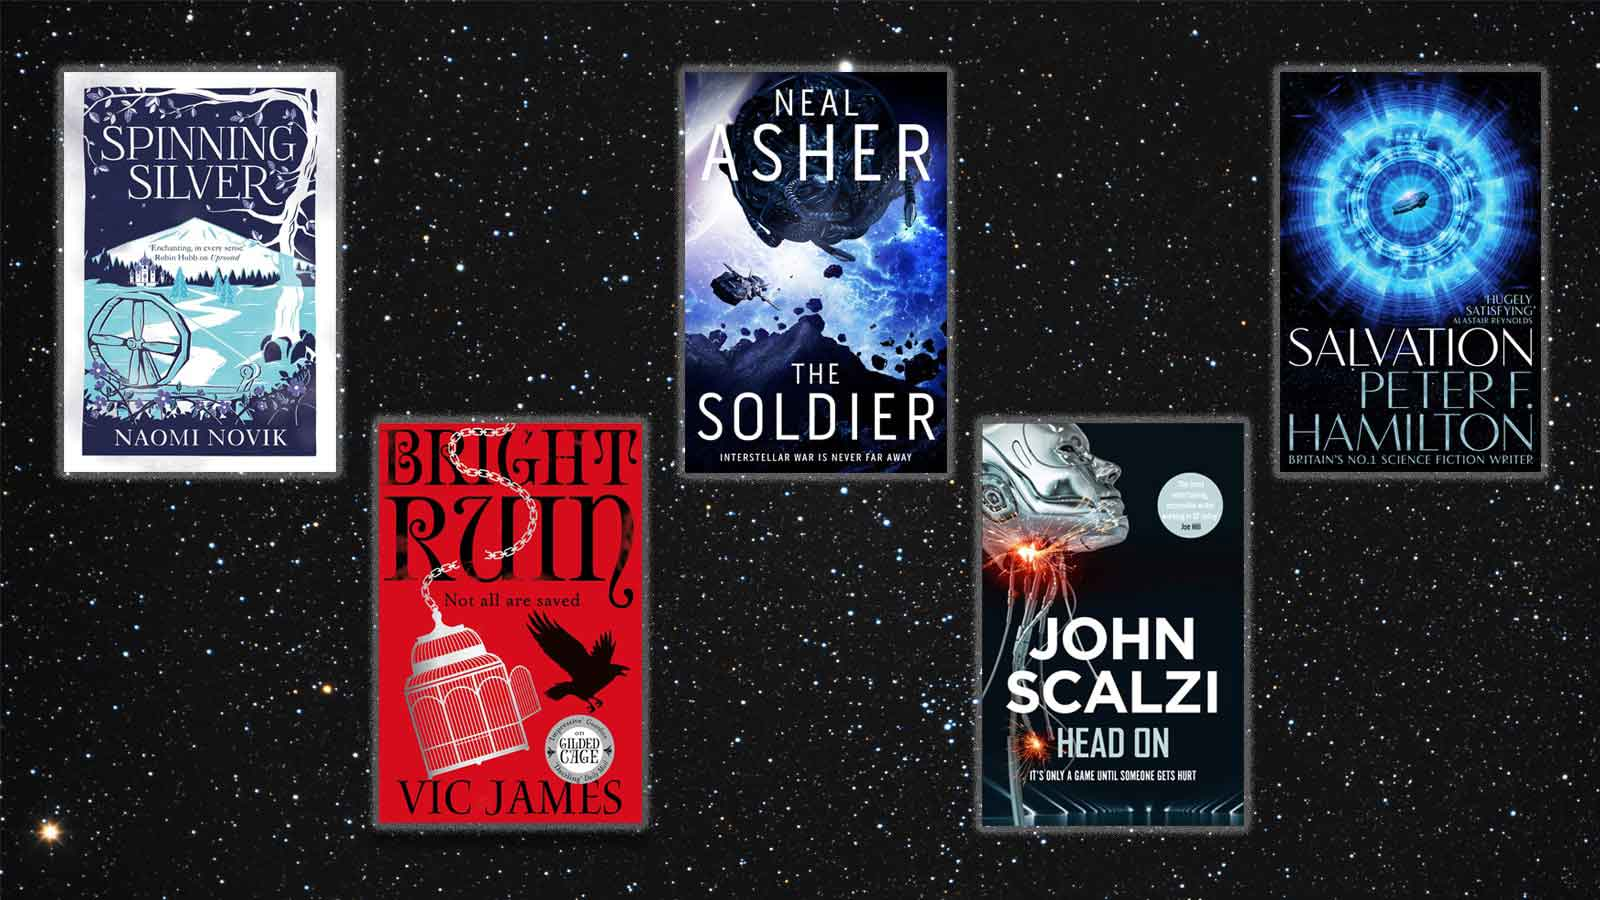 Covers of the 6 books: Spinning Silver, Bright Ruin, the Soldier, Head On and Salvation, on a background of stars